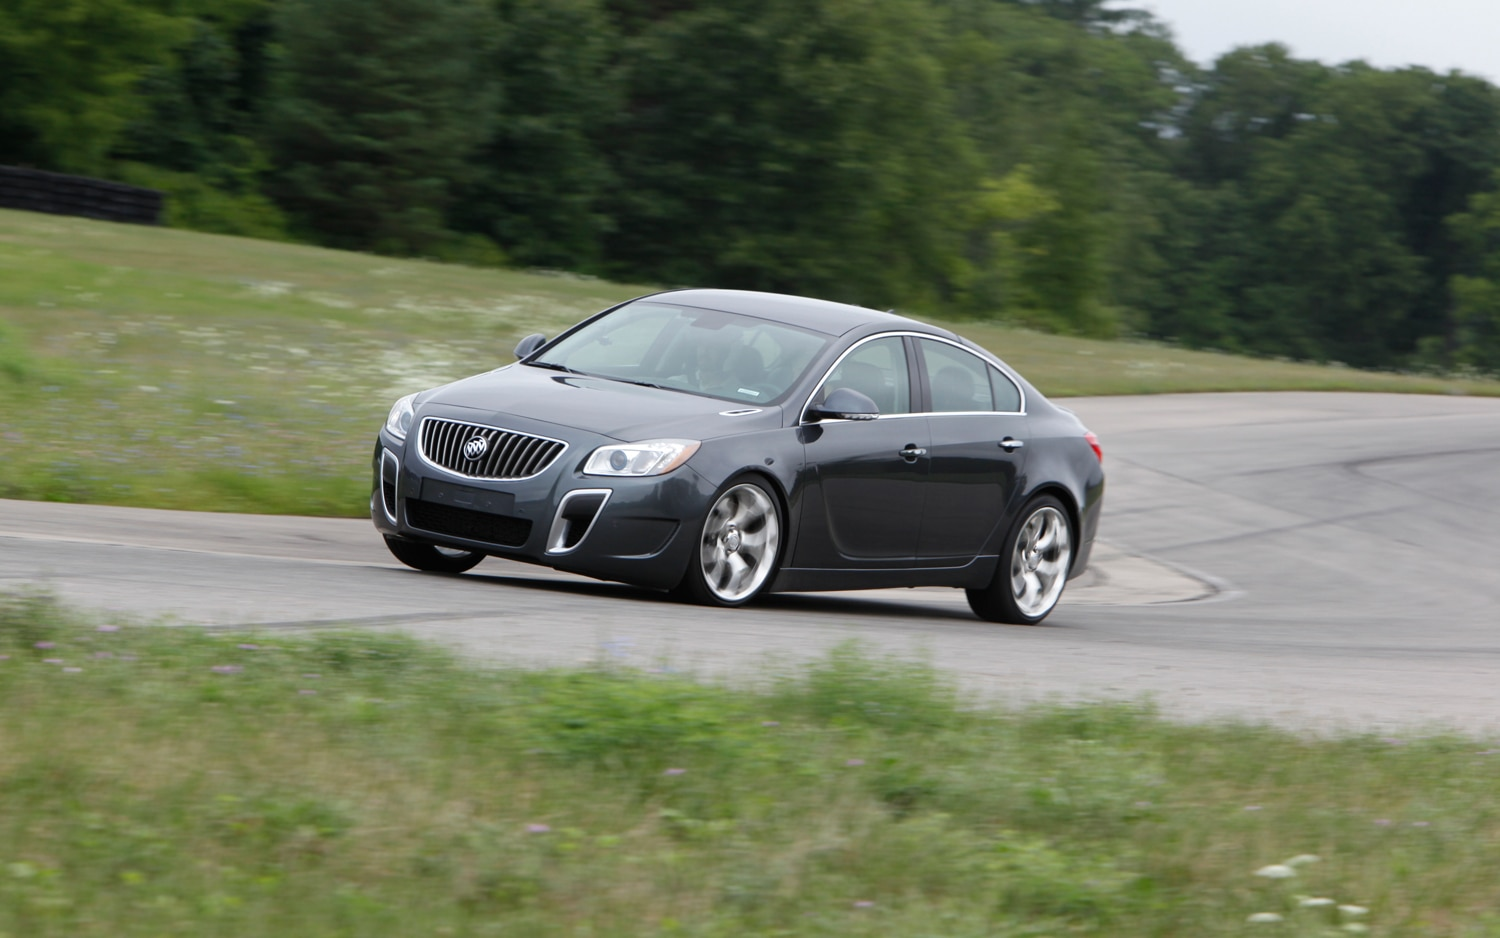 2012 buick regal gs short drive automobile magazine. Black Bedroom Furniture Sets. Home Design Ideas